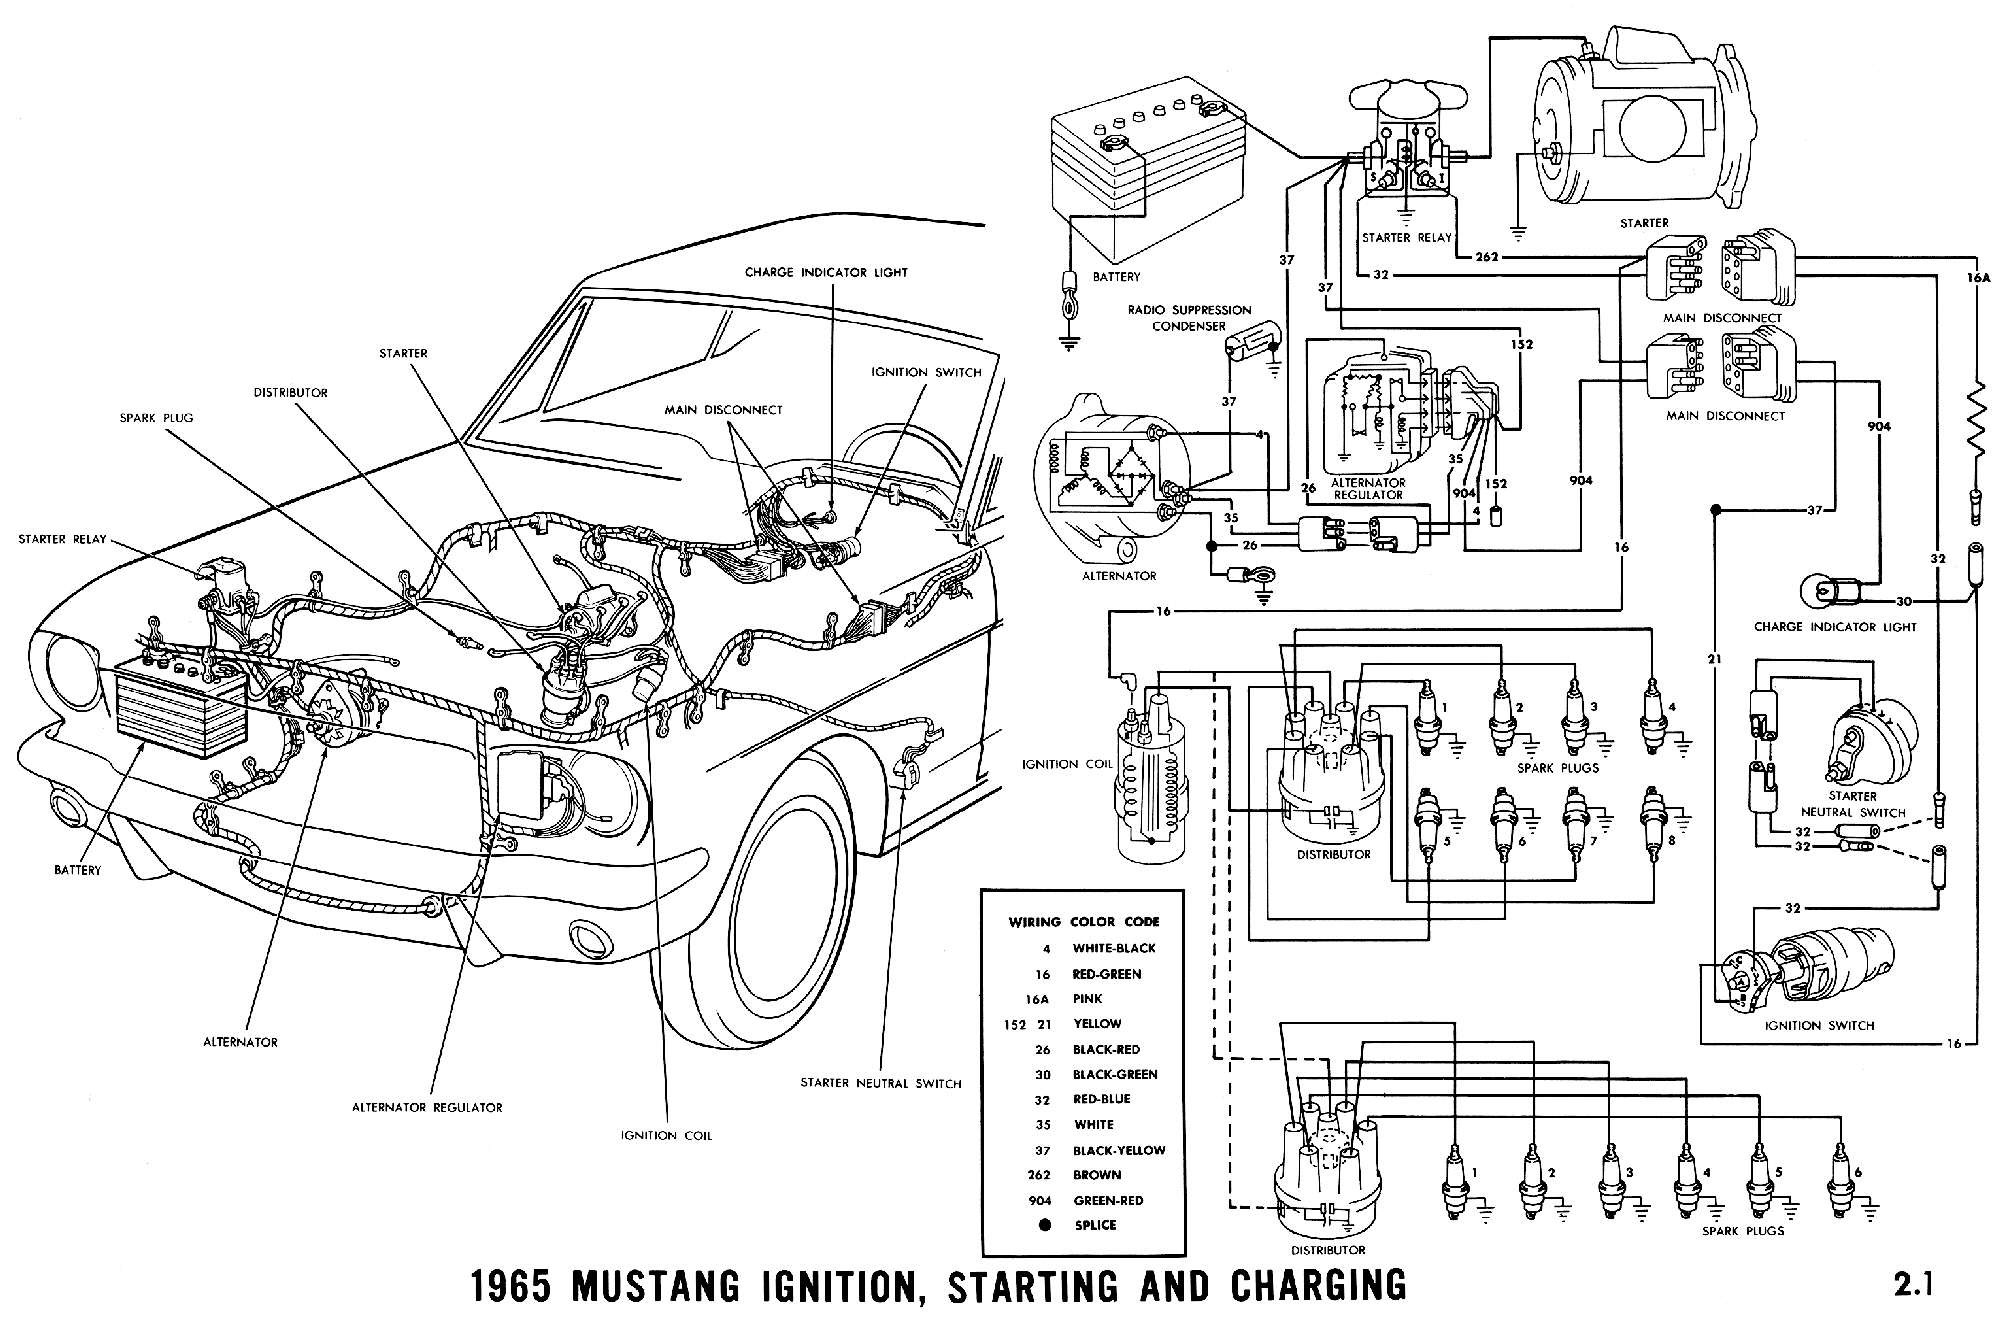 Auto Interior Diagram : Funky car interior diagram photos electrical system